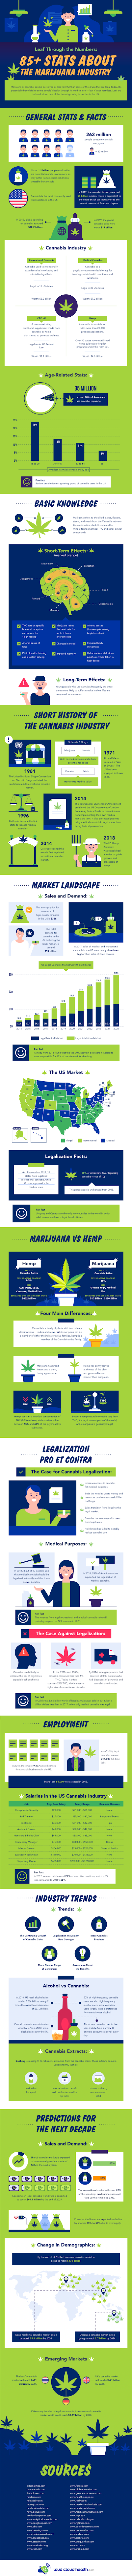 85+ Must-Know Marijuana Statistics and Facts #infographic #Marijuana Statistics #infographics #Marijuana Industry #Cannabis #Cannabis Industry #Statistics and Facts